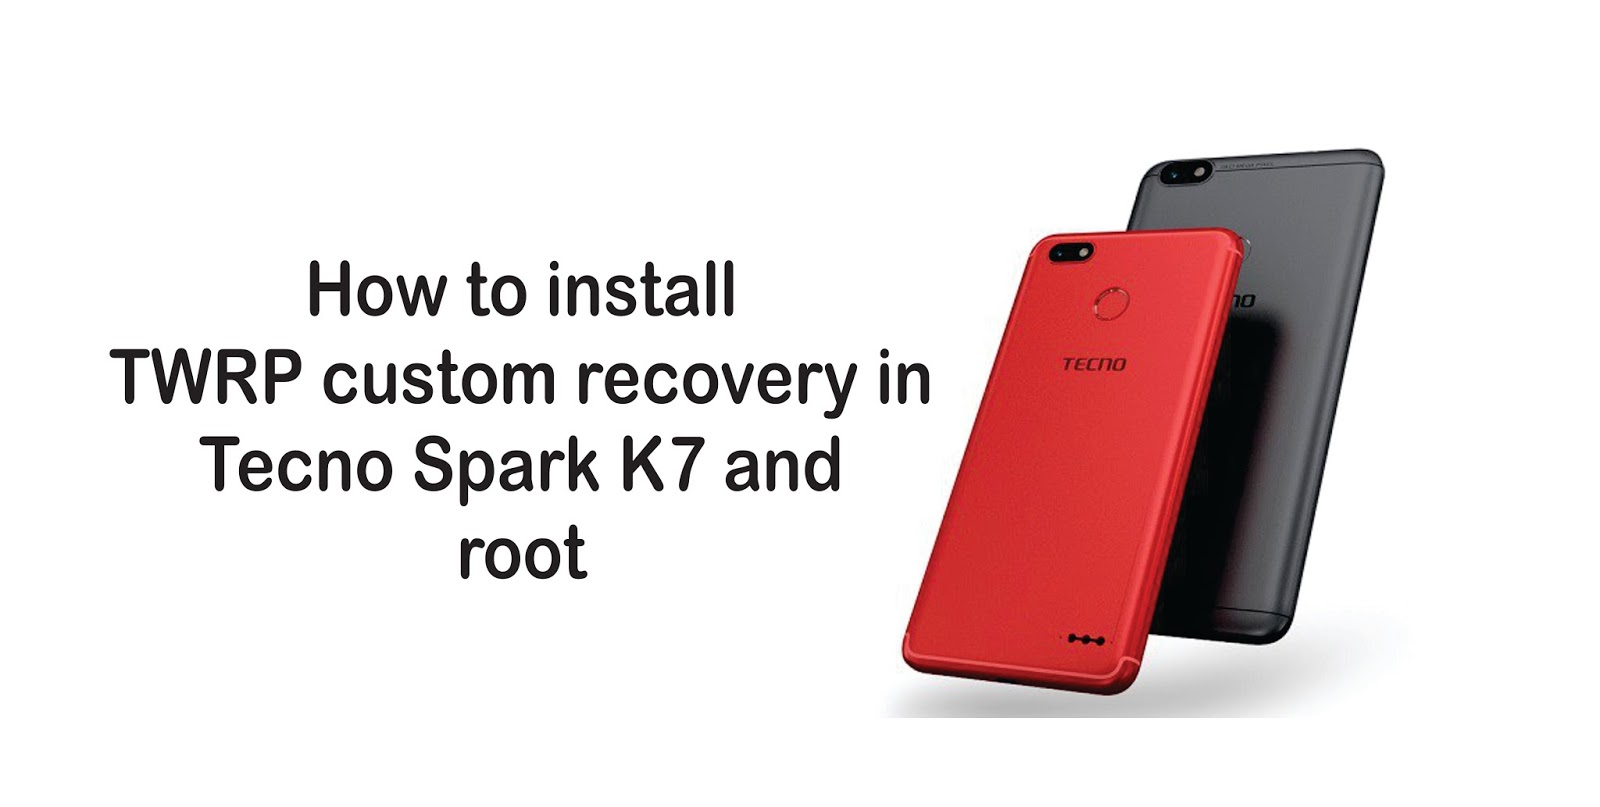 How to install TWRP custom recovery in Tecno Spark K7 and